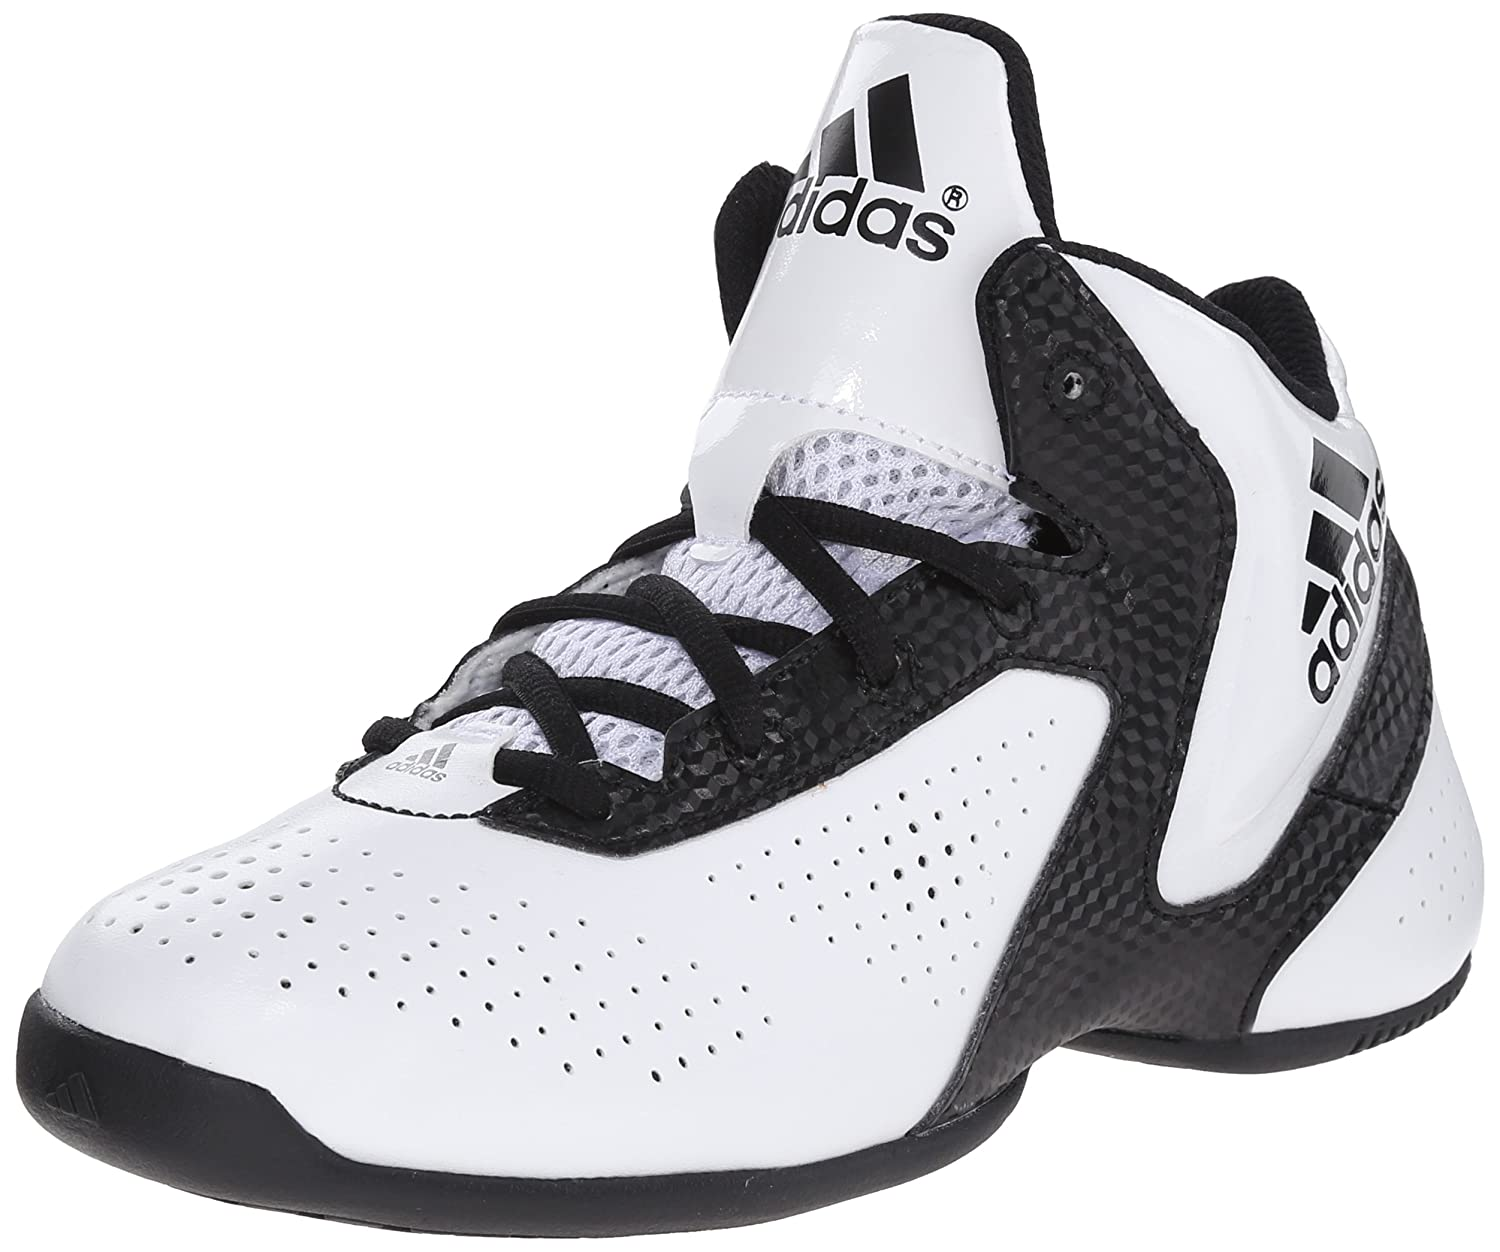 adidas Performance NXT LVL SPD Next Level Speed 3 K Basketball Shoe (Little Kid/Big Kid) White/Black/White 10.5 M US Little Kid NXT LVL SPD 3 K - K